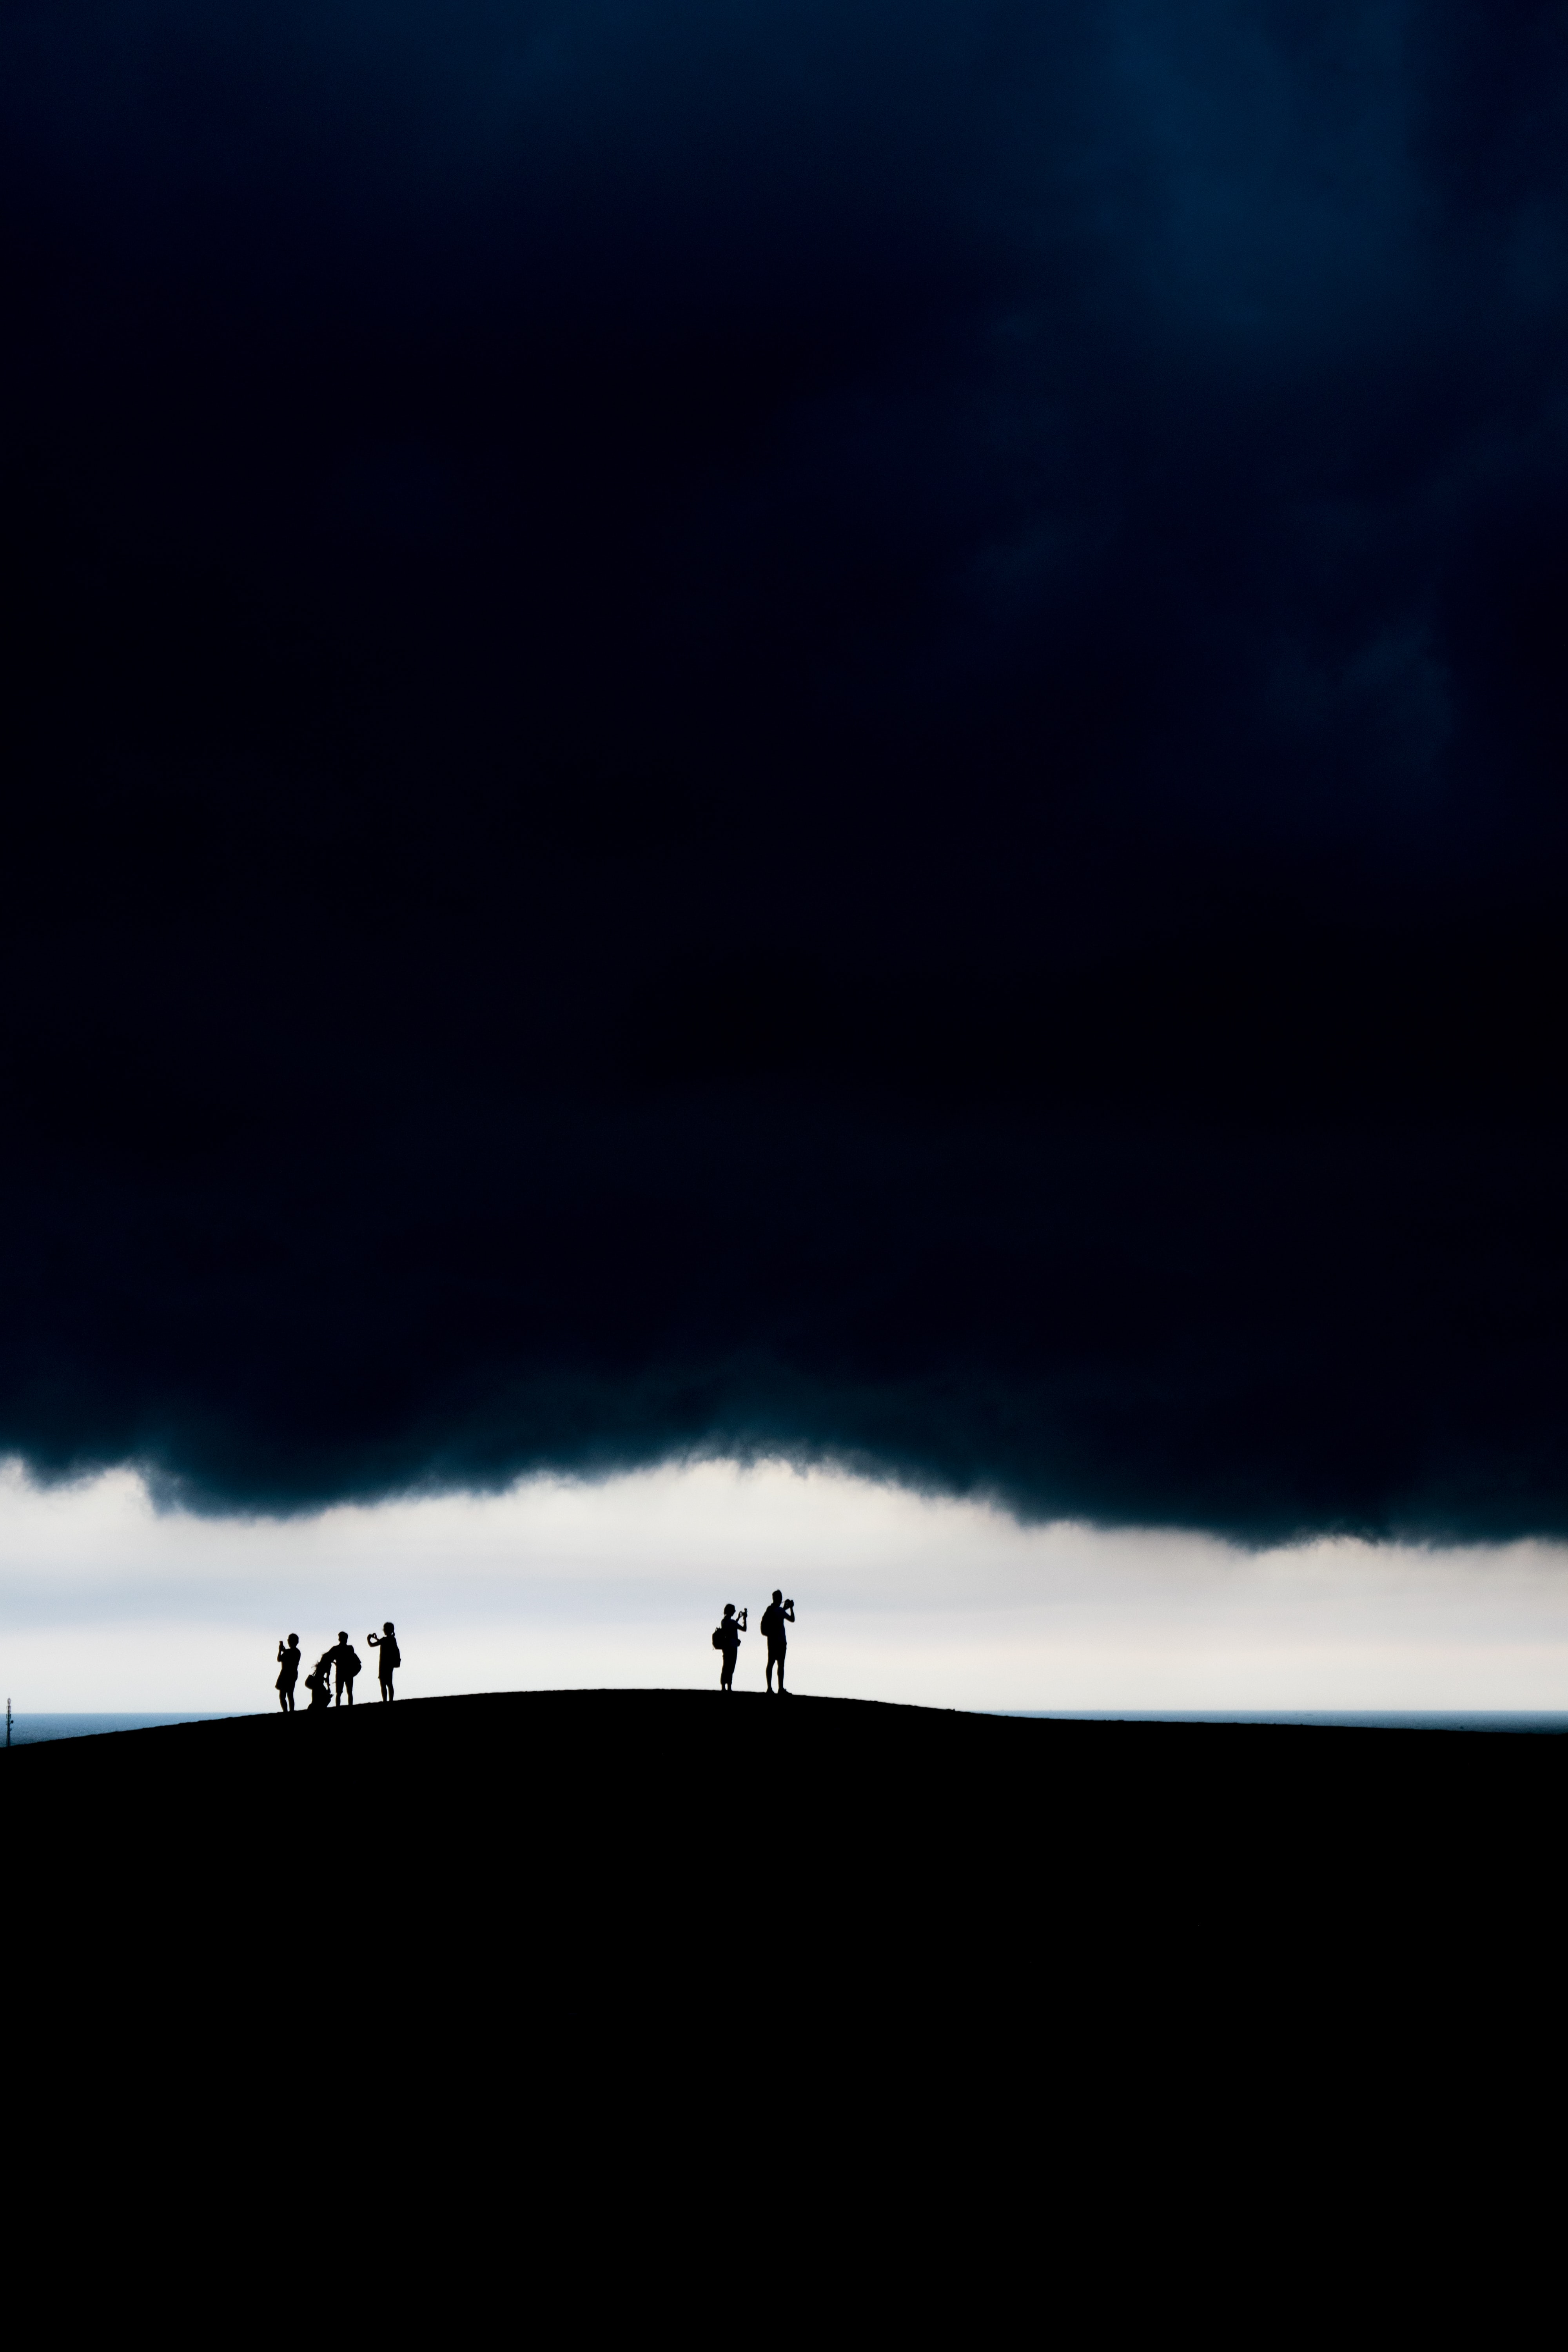 People standing under dark clouds.